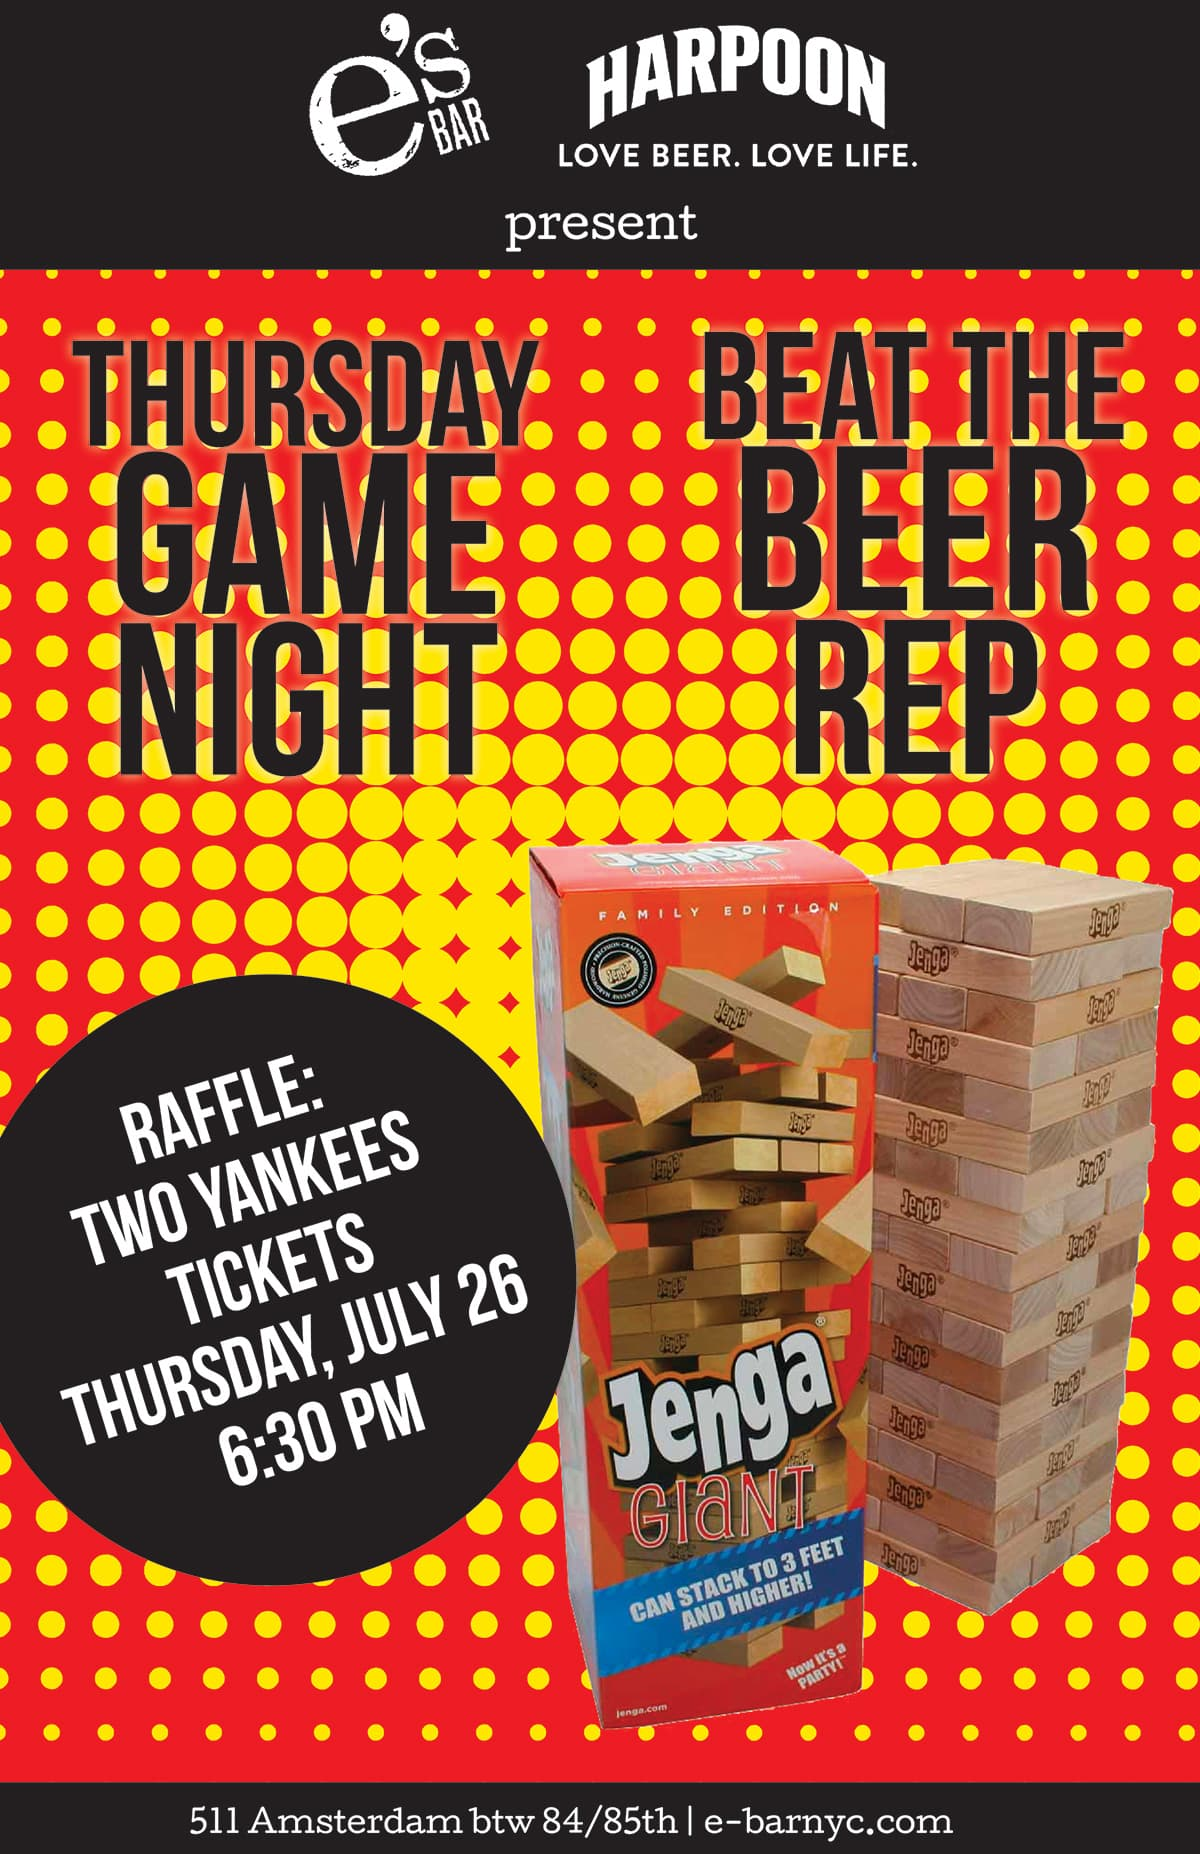 e's BAR Game Night Poster - Beer Rep Jenga